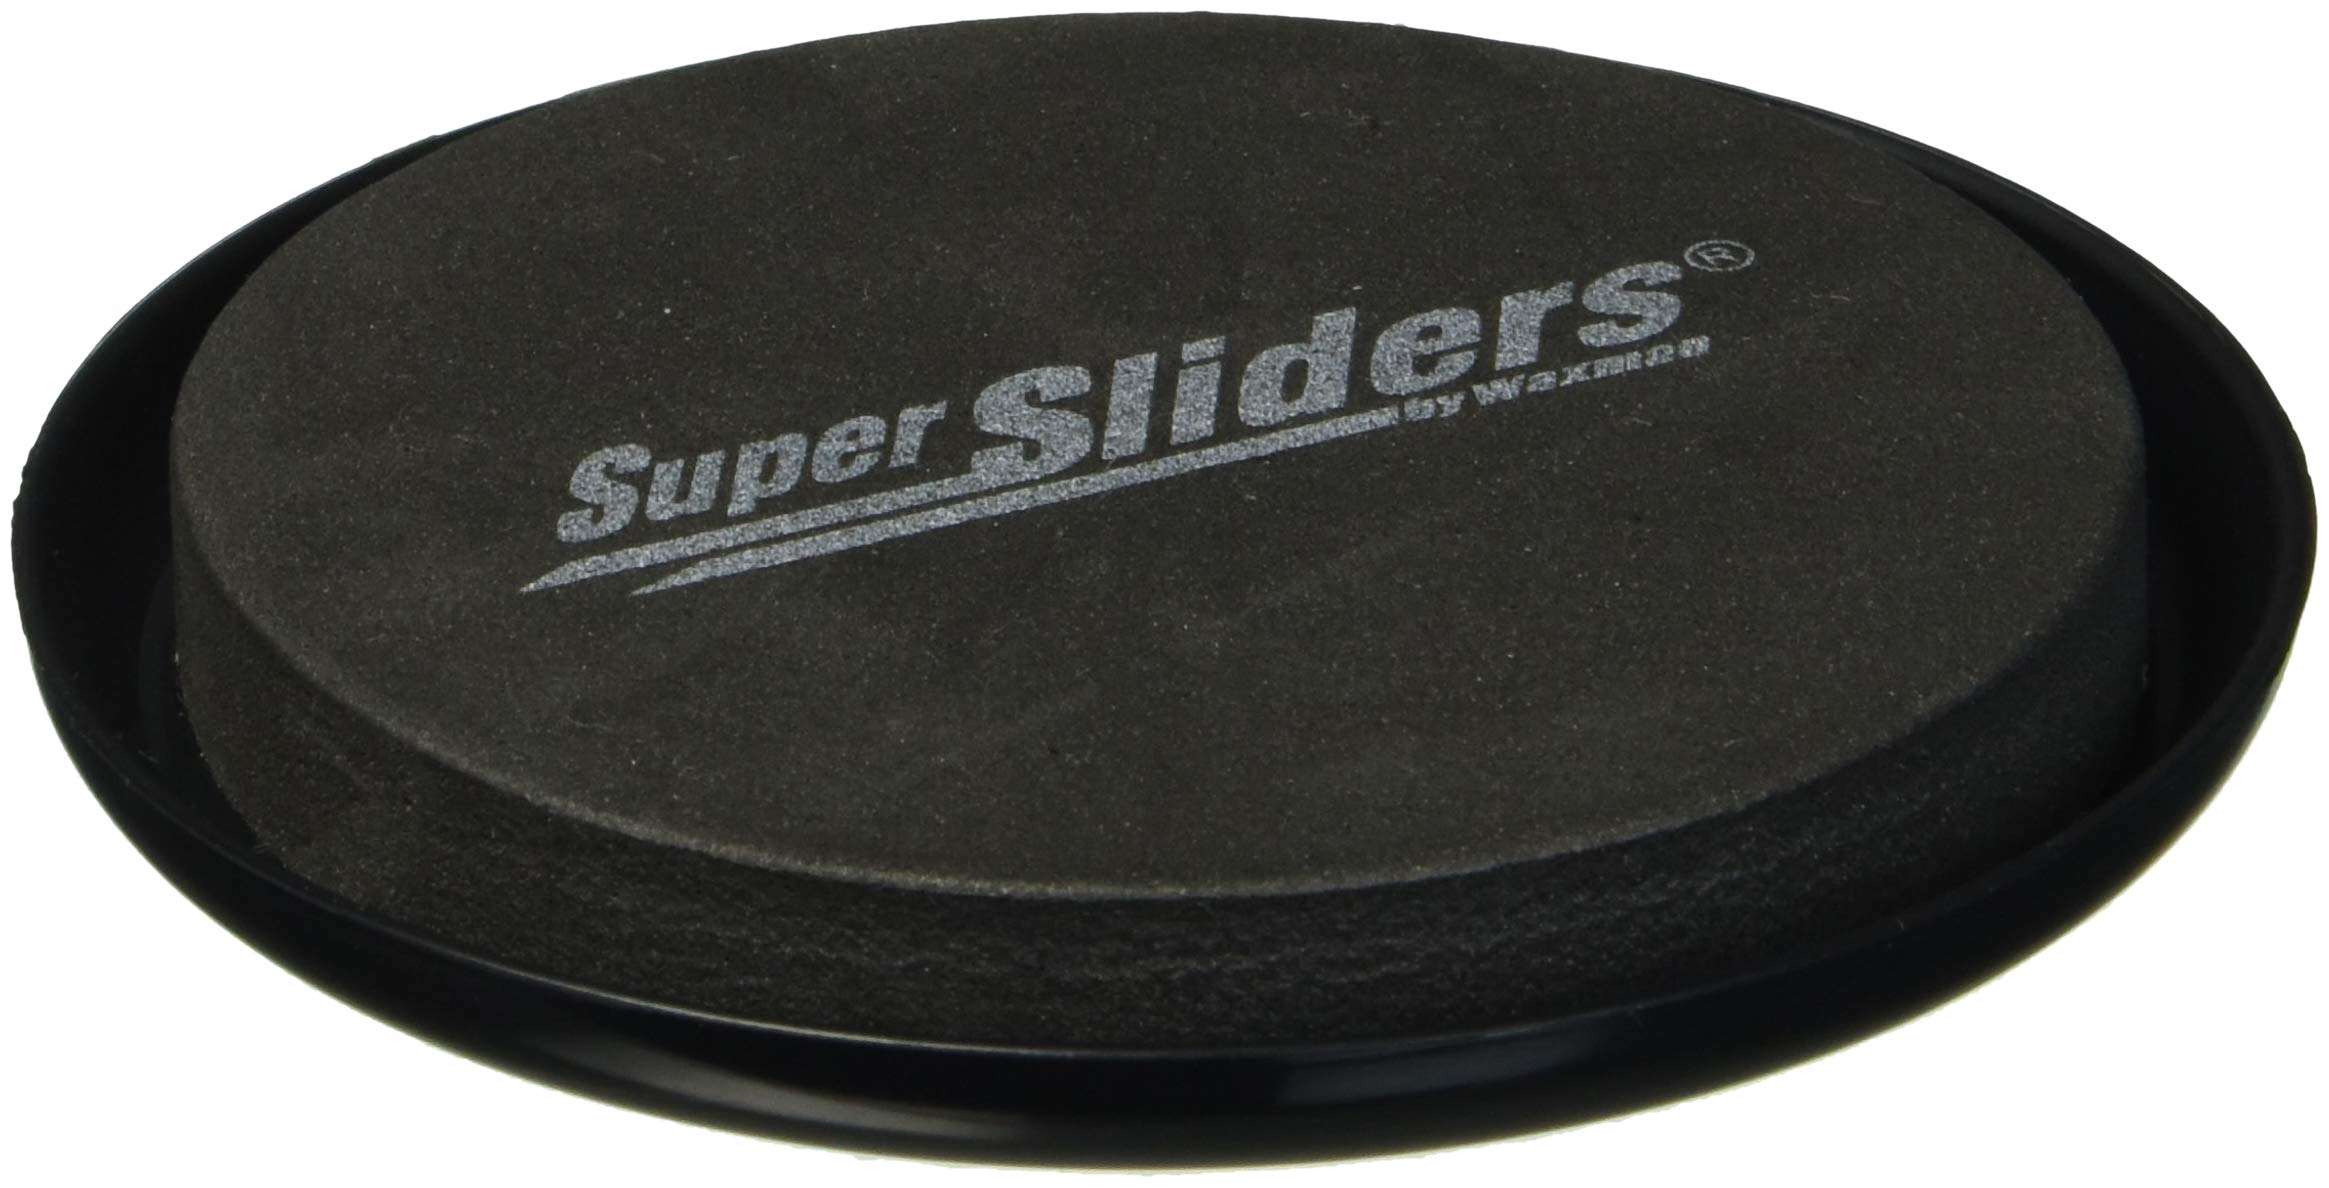 """SuperSliders 4763395N Reusable Furniture Sliders for Carpet- Quickly and Easily Move Any Item, 3-1/2"""" Black (4 Pack)"""